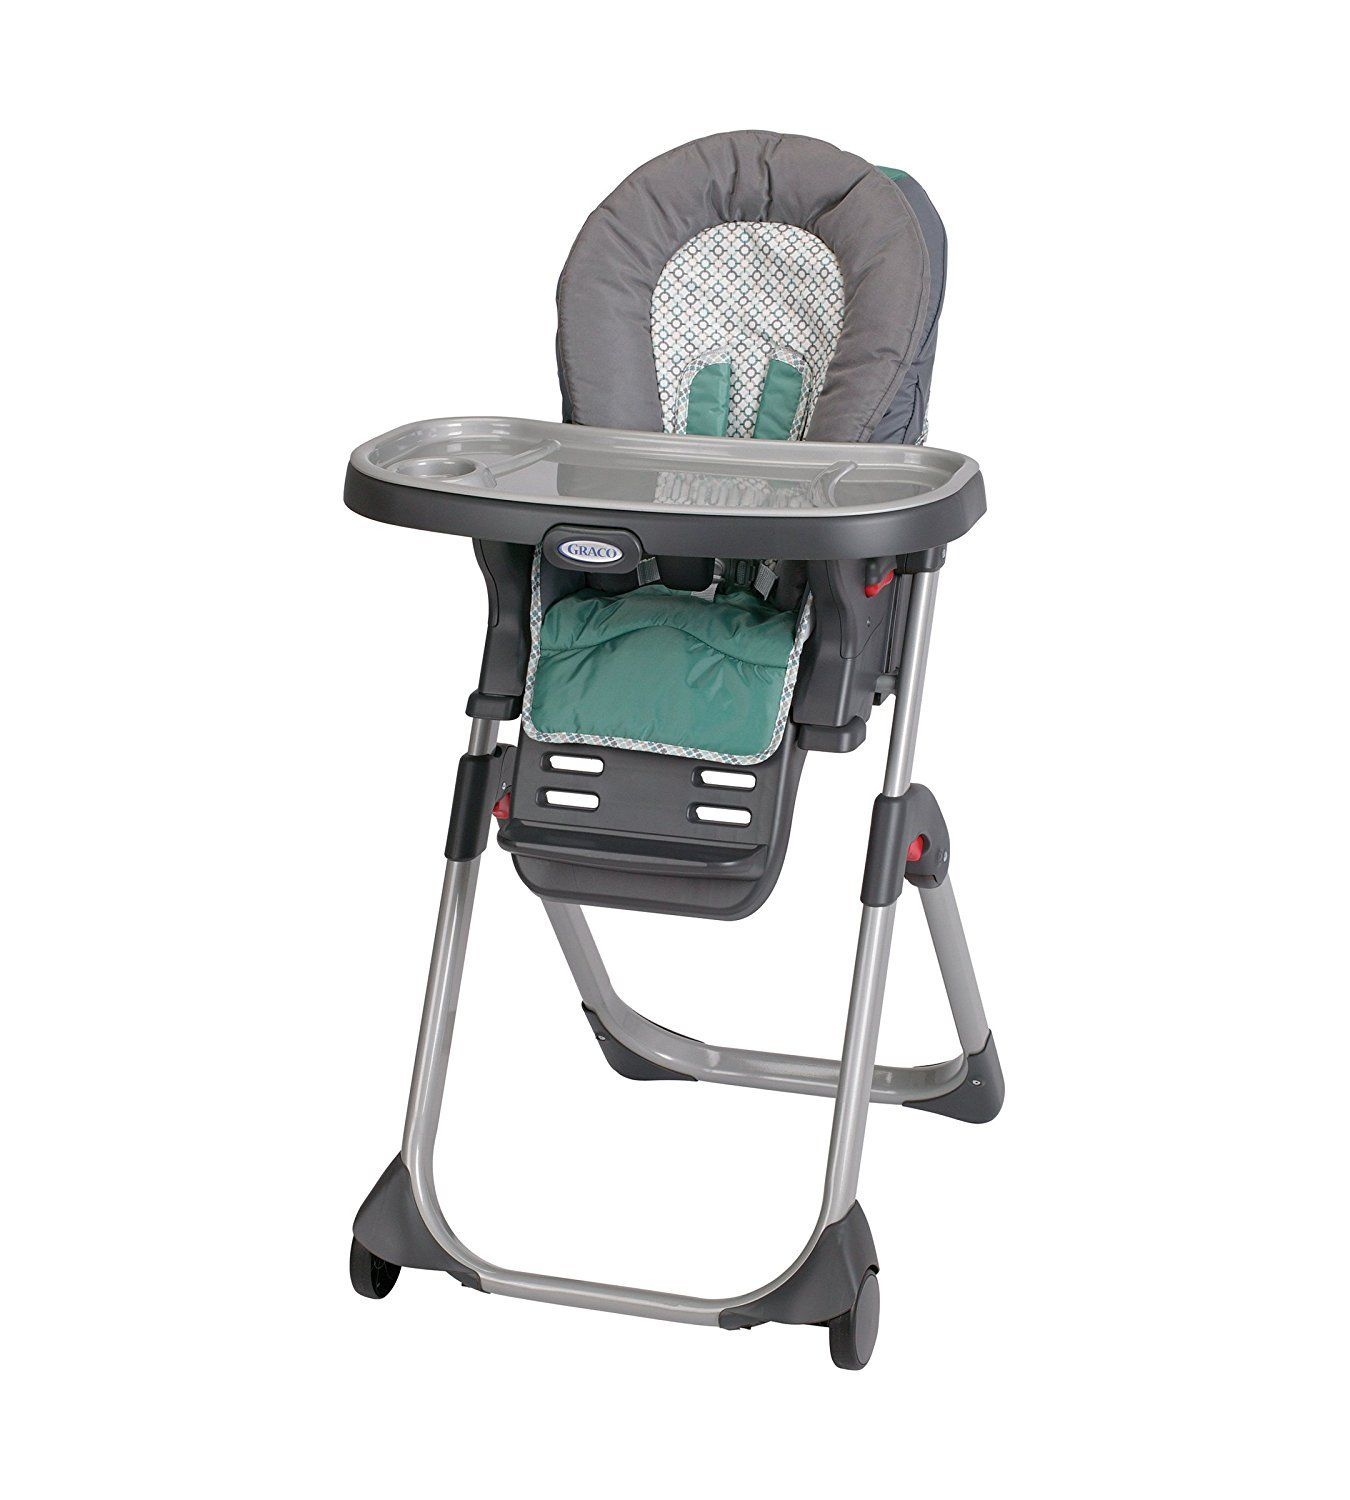 Graco DuoDiner 3-in-1 High Chair, Bermuda by Graco